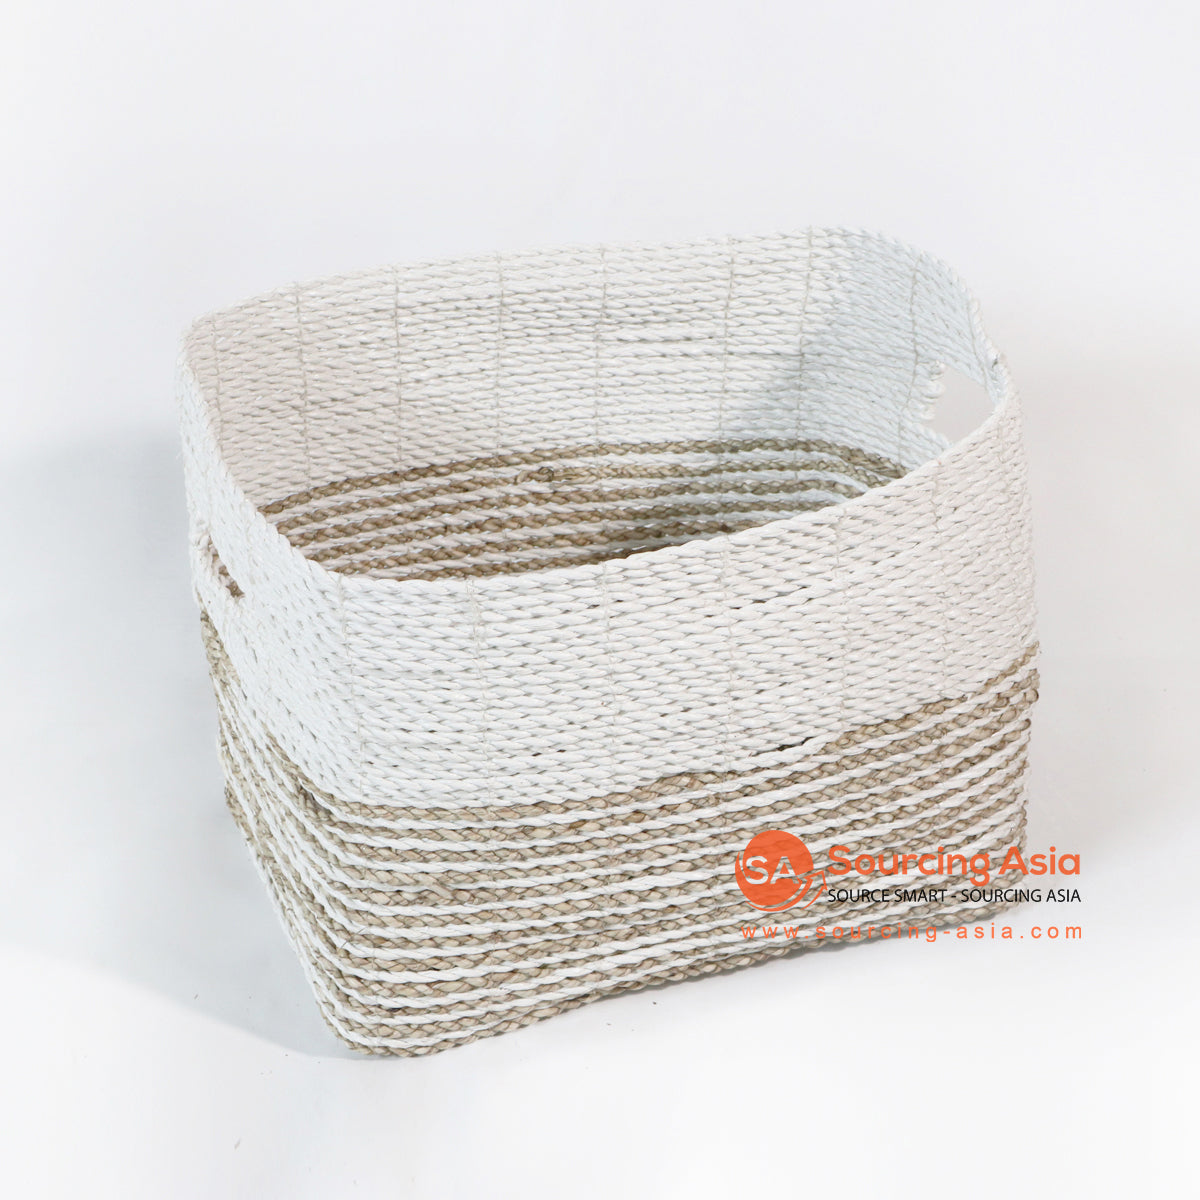 HBS169 RECTANGLE BASKET